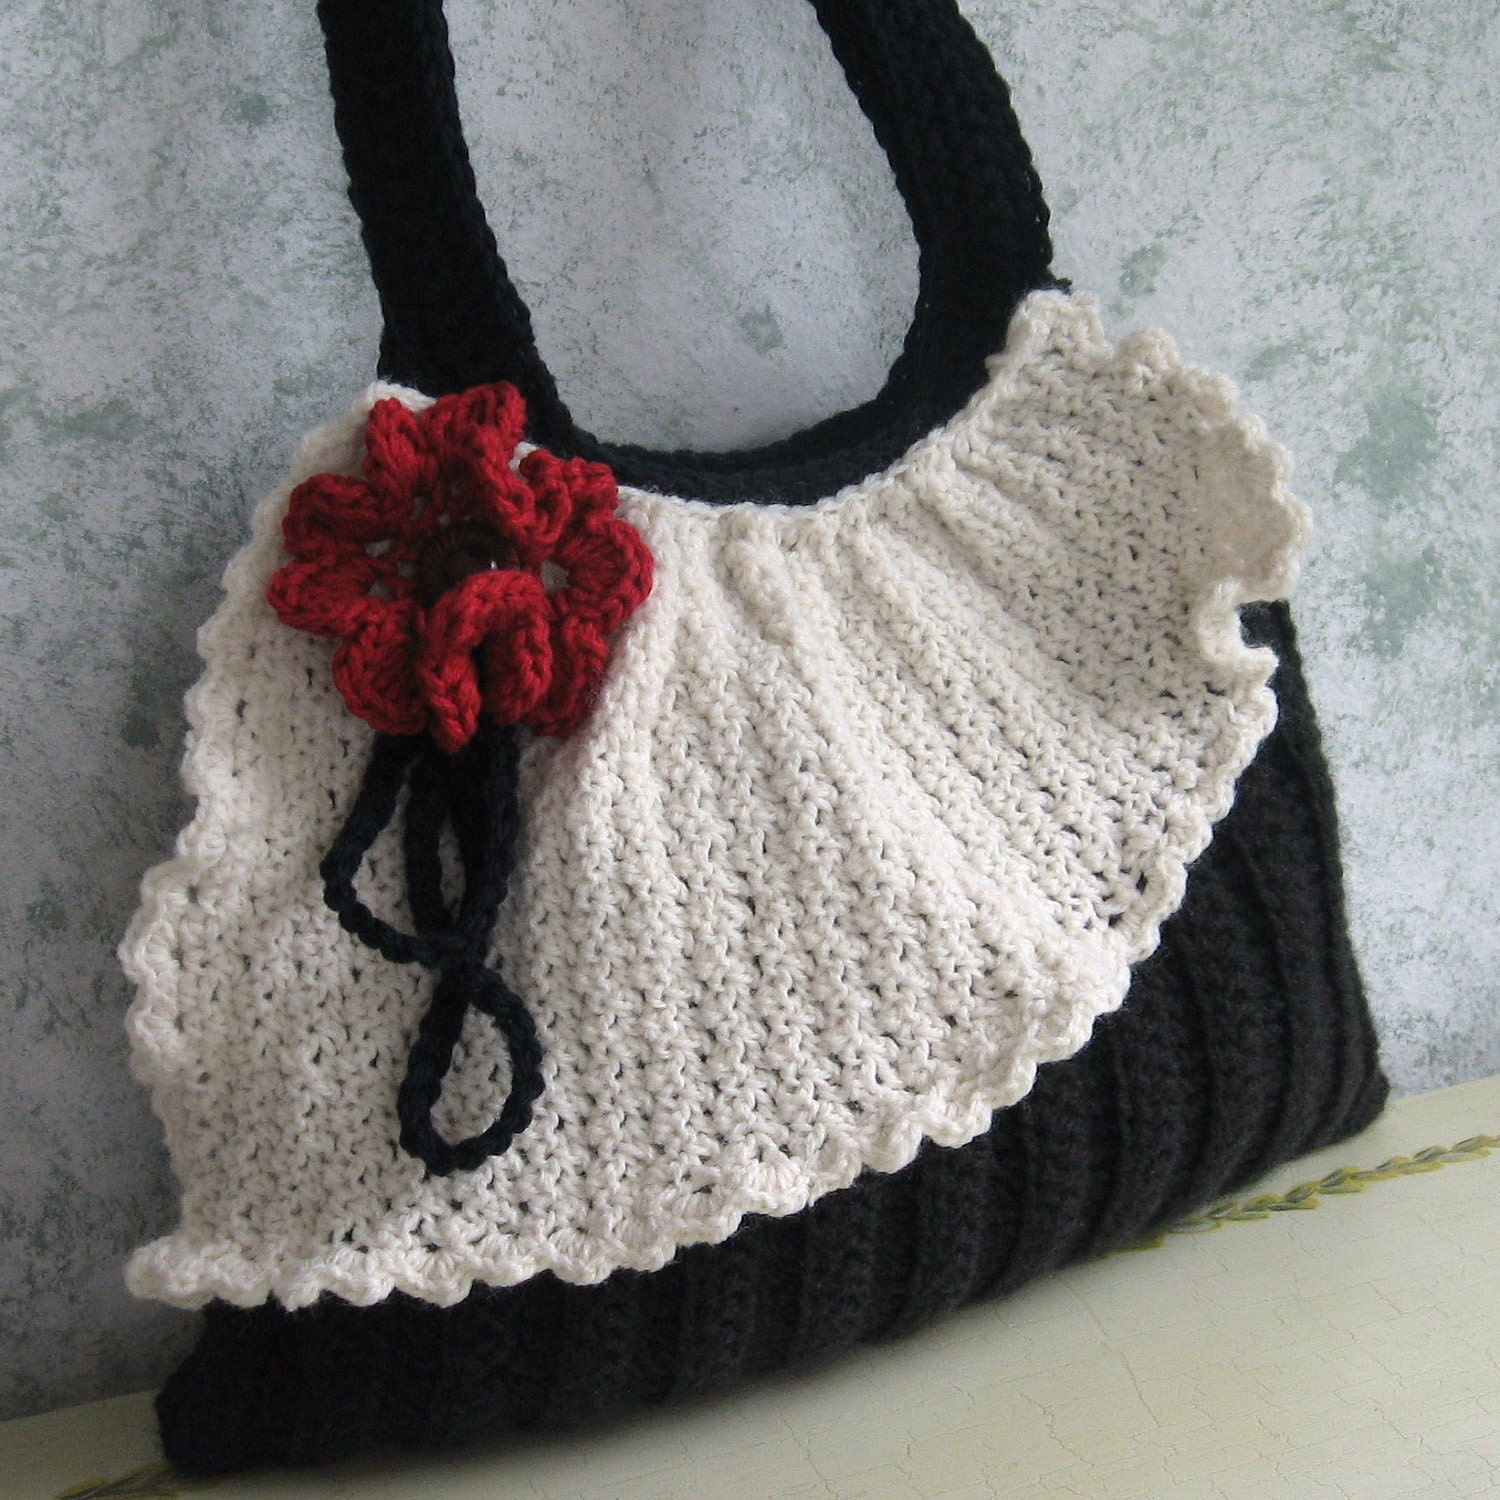 Crochet Patterns Purses : Crochet Purse Pattern Pleated Bag With Drape And by kalliedesigns